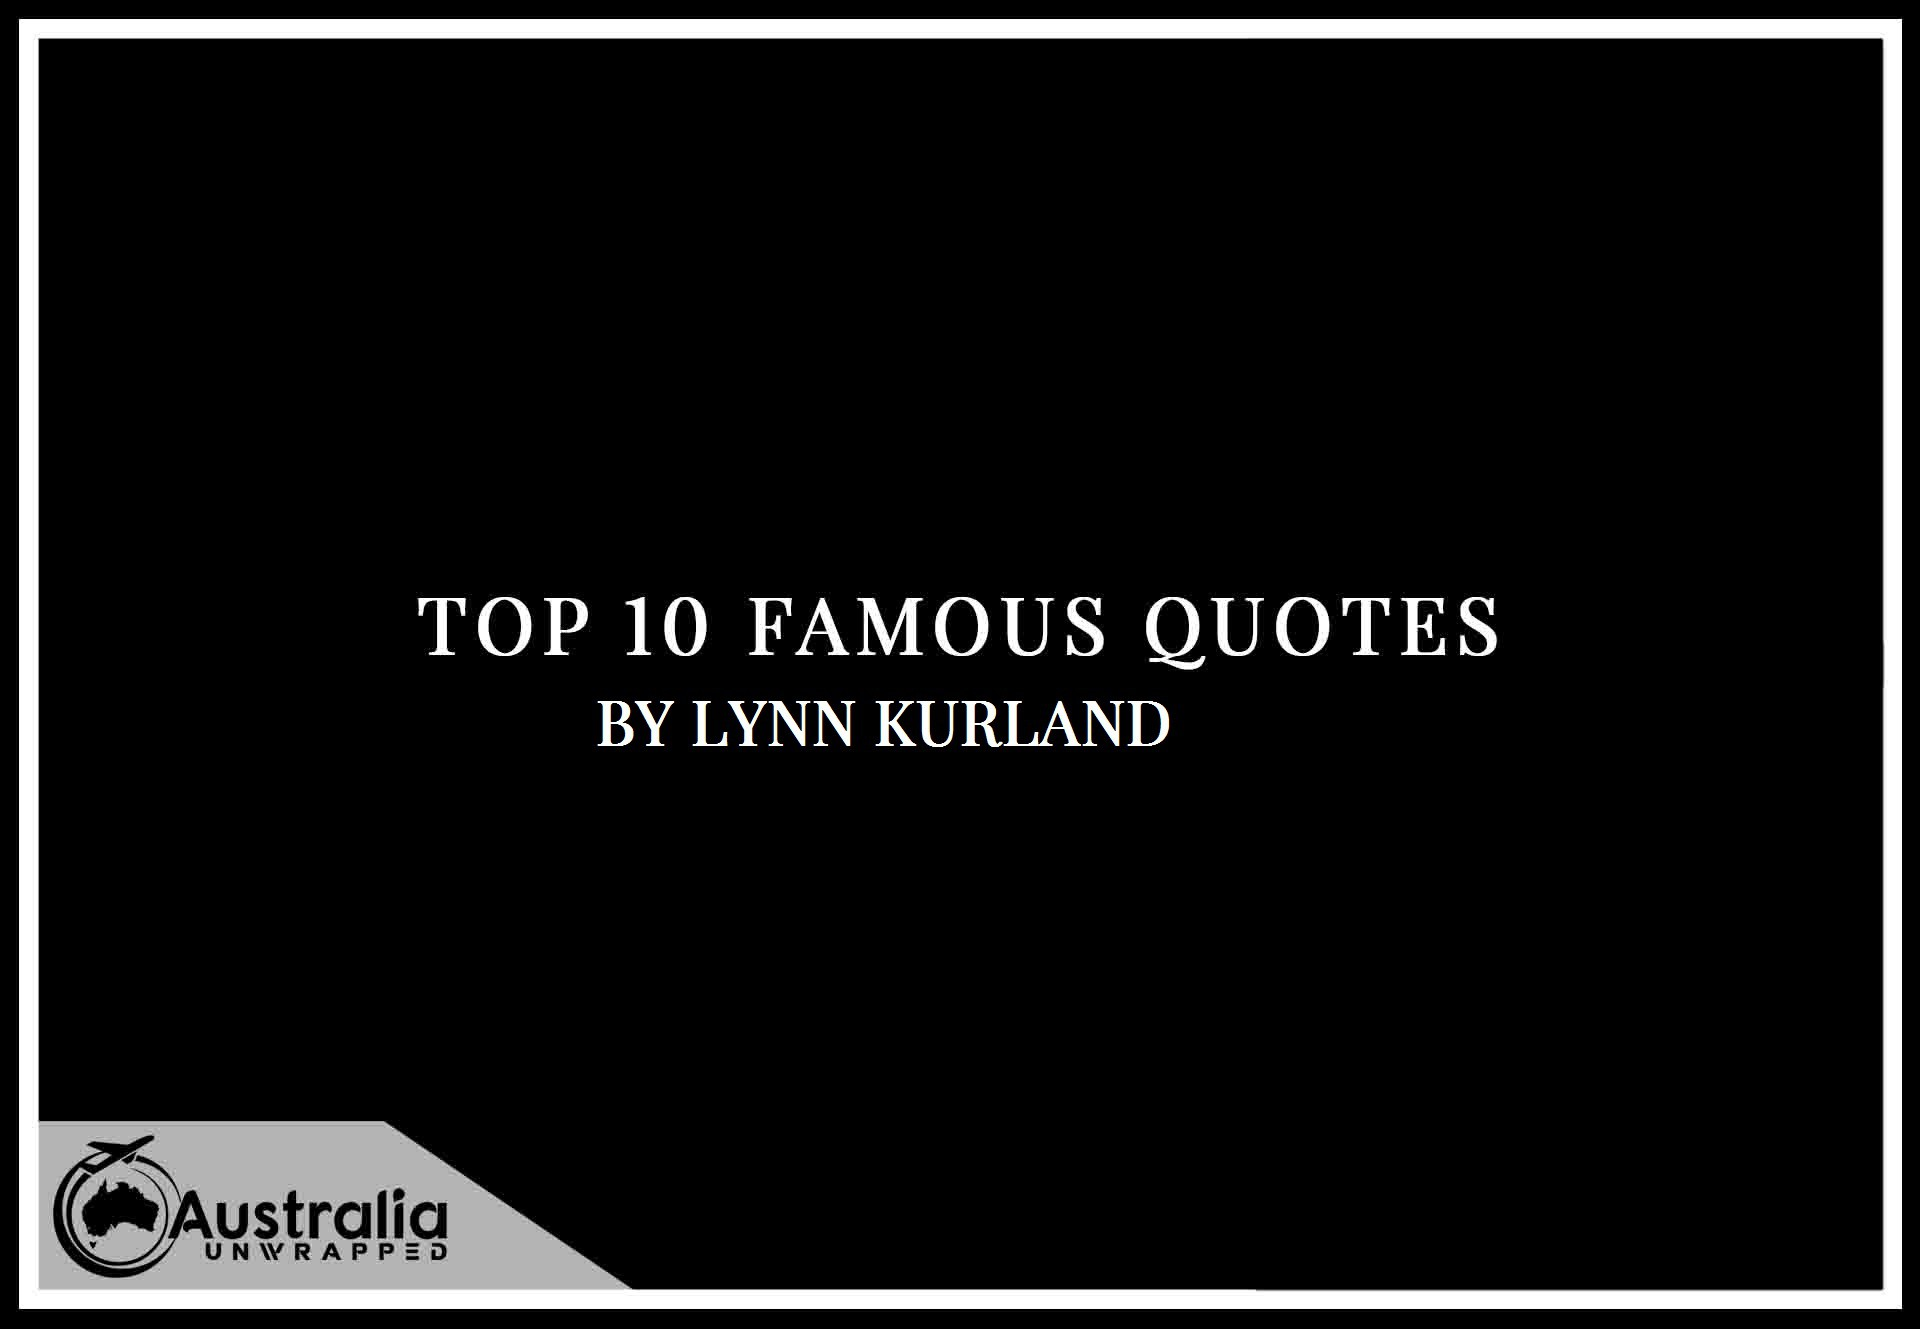 Lynn Kurland's Top 10 Popular and Famous Quotes